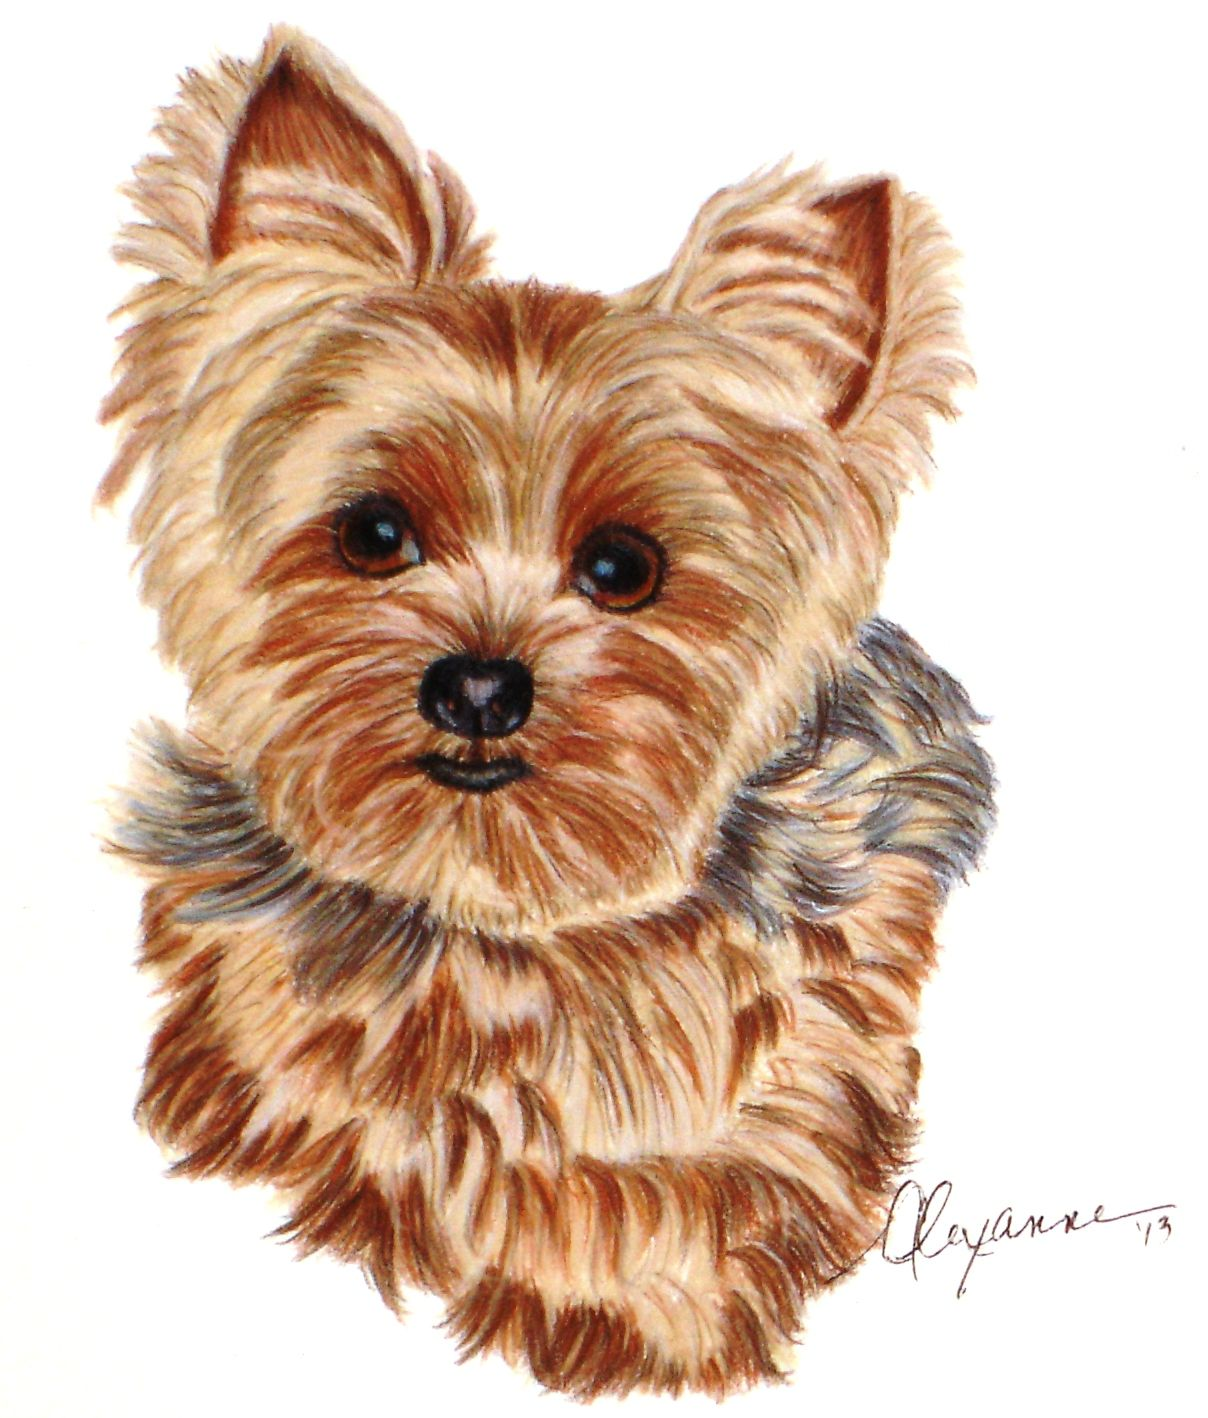 Commissioned Drawing Of A Yorkie On Stonehenge Paper 8 X 8 This Was A Practice Final Will Be On Suede Board Februa Yorkie Painting Yorkie Yorkie Puppy